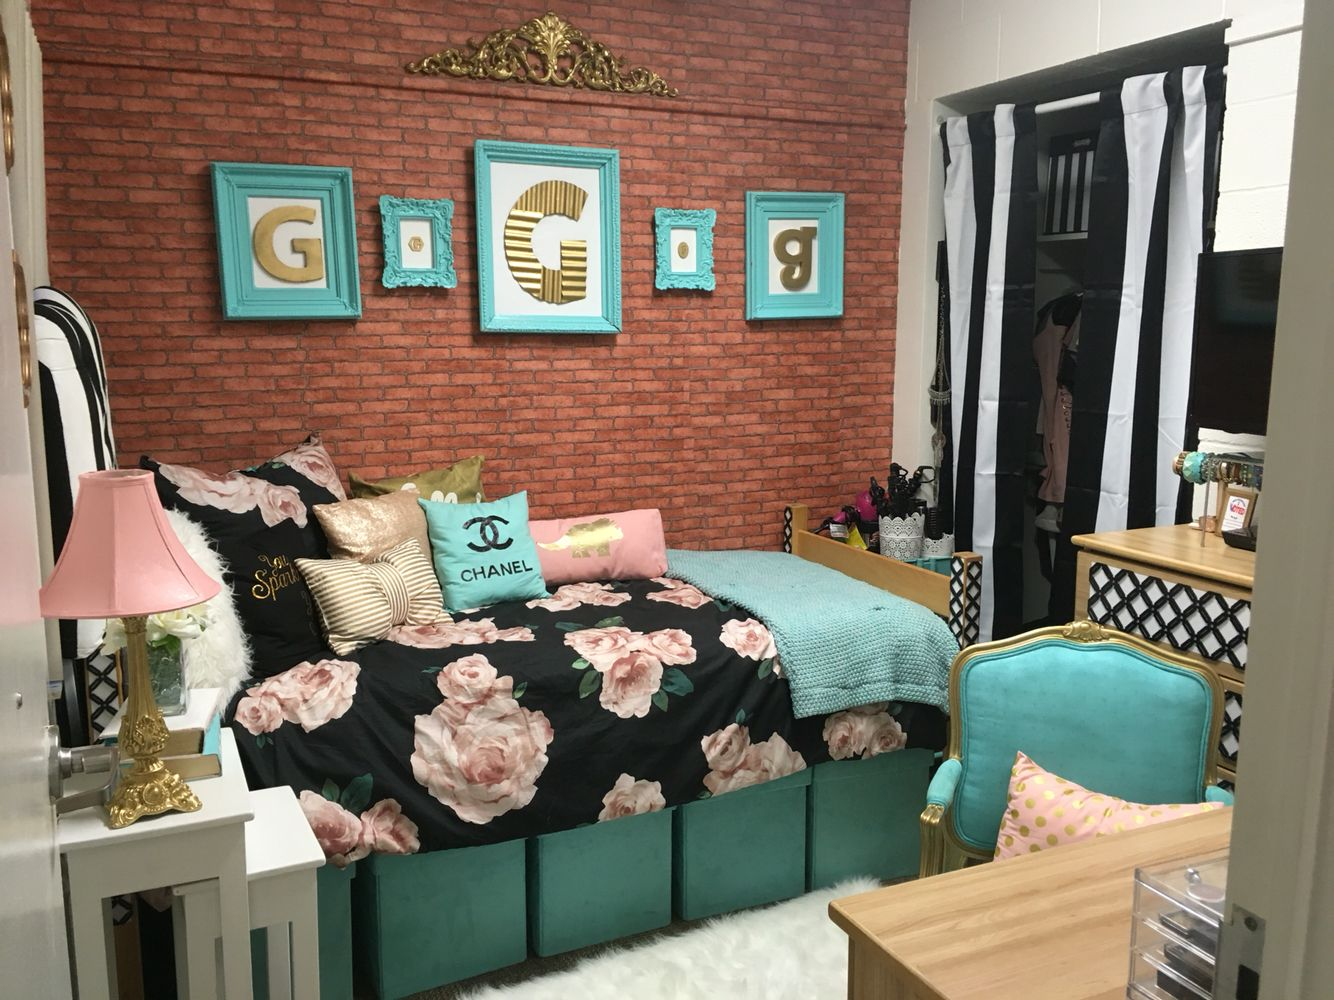 Gabbies UCF Dorm Room 2016 Cool Ideas Makeover Girls Freshman Residence Hall